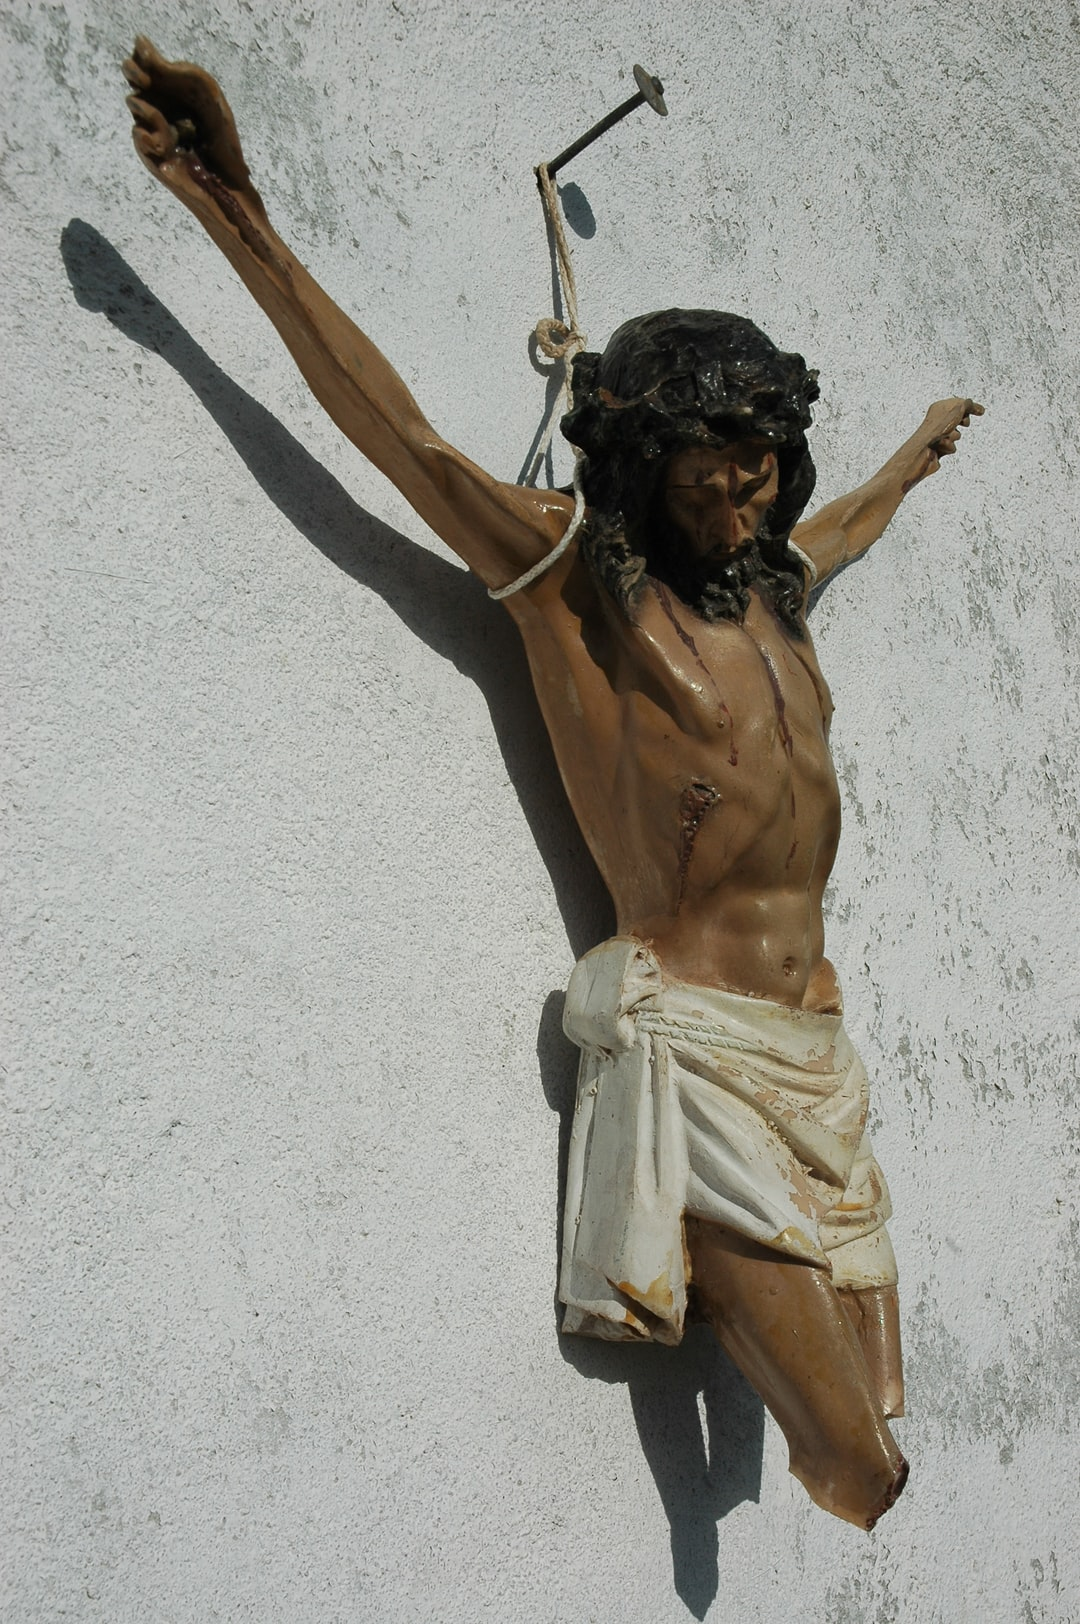 Broken statue of Christ crucified, nailed to a wall with string supporting His arms, abandoned object, reused on a countryside outdoor folk shrine, faith, love, Hermosillo, Senora, Mexico